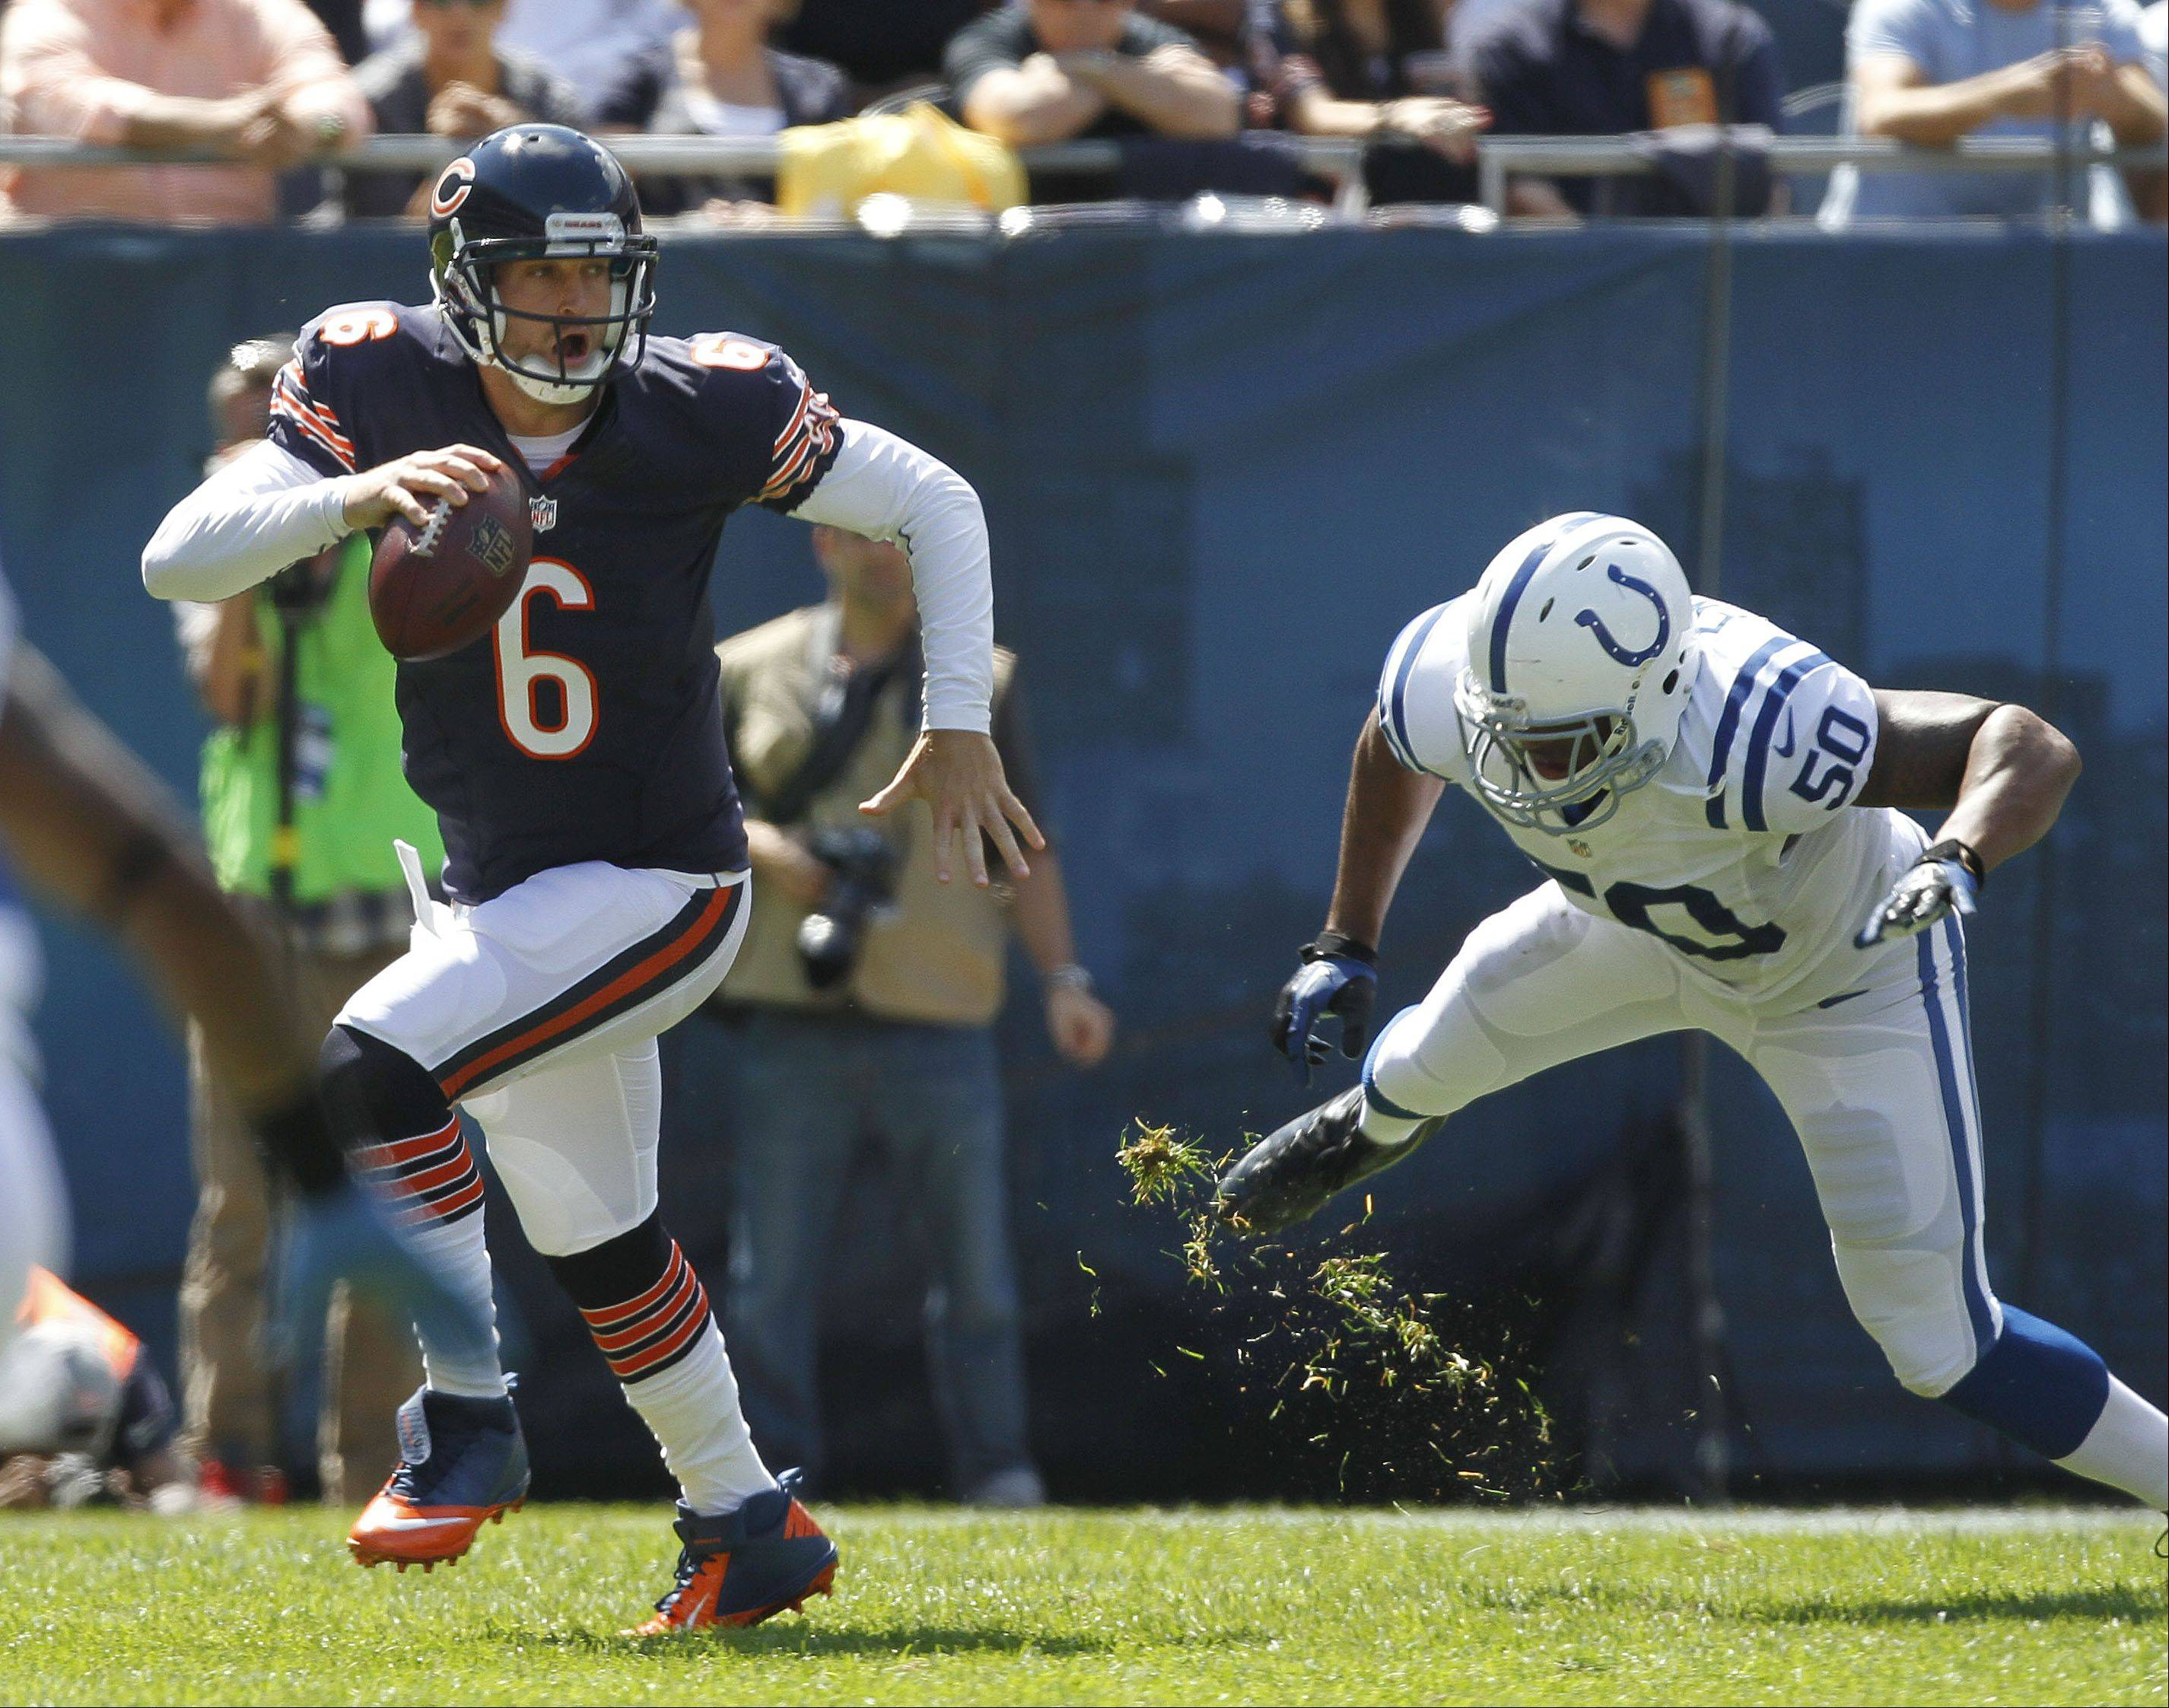 Chicago Bears quarterback Jay Cutler scrambles to get away from Indianapolis Colts linebacker Jerrell Freeman during the Bears season opener.